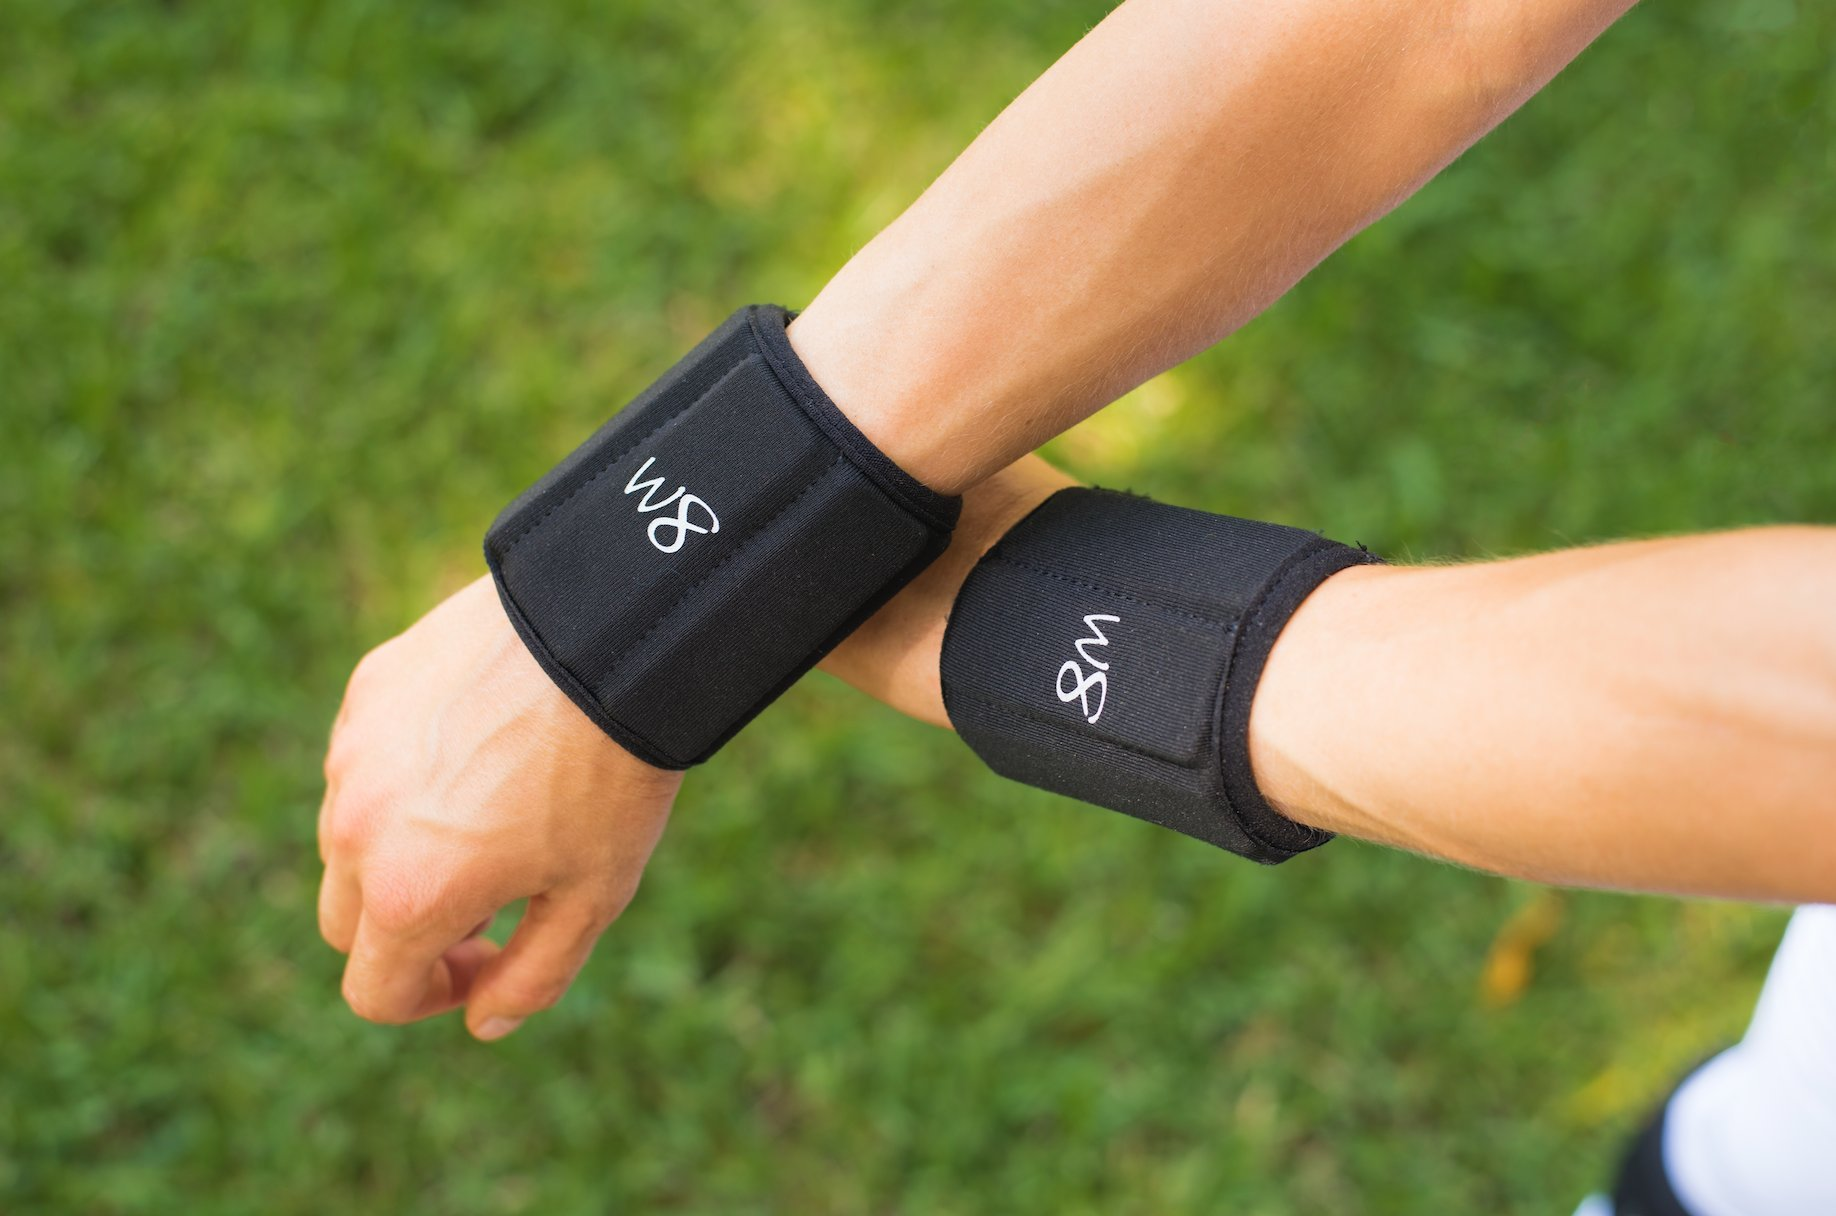 W8FIT 1 LB Set of 2 Adjustable Weighted Wrist Cuffs (Black, Large)